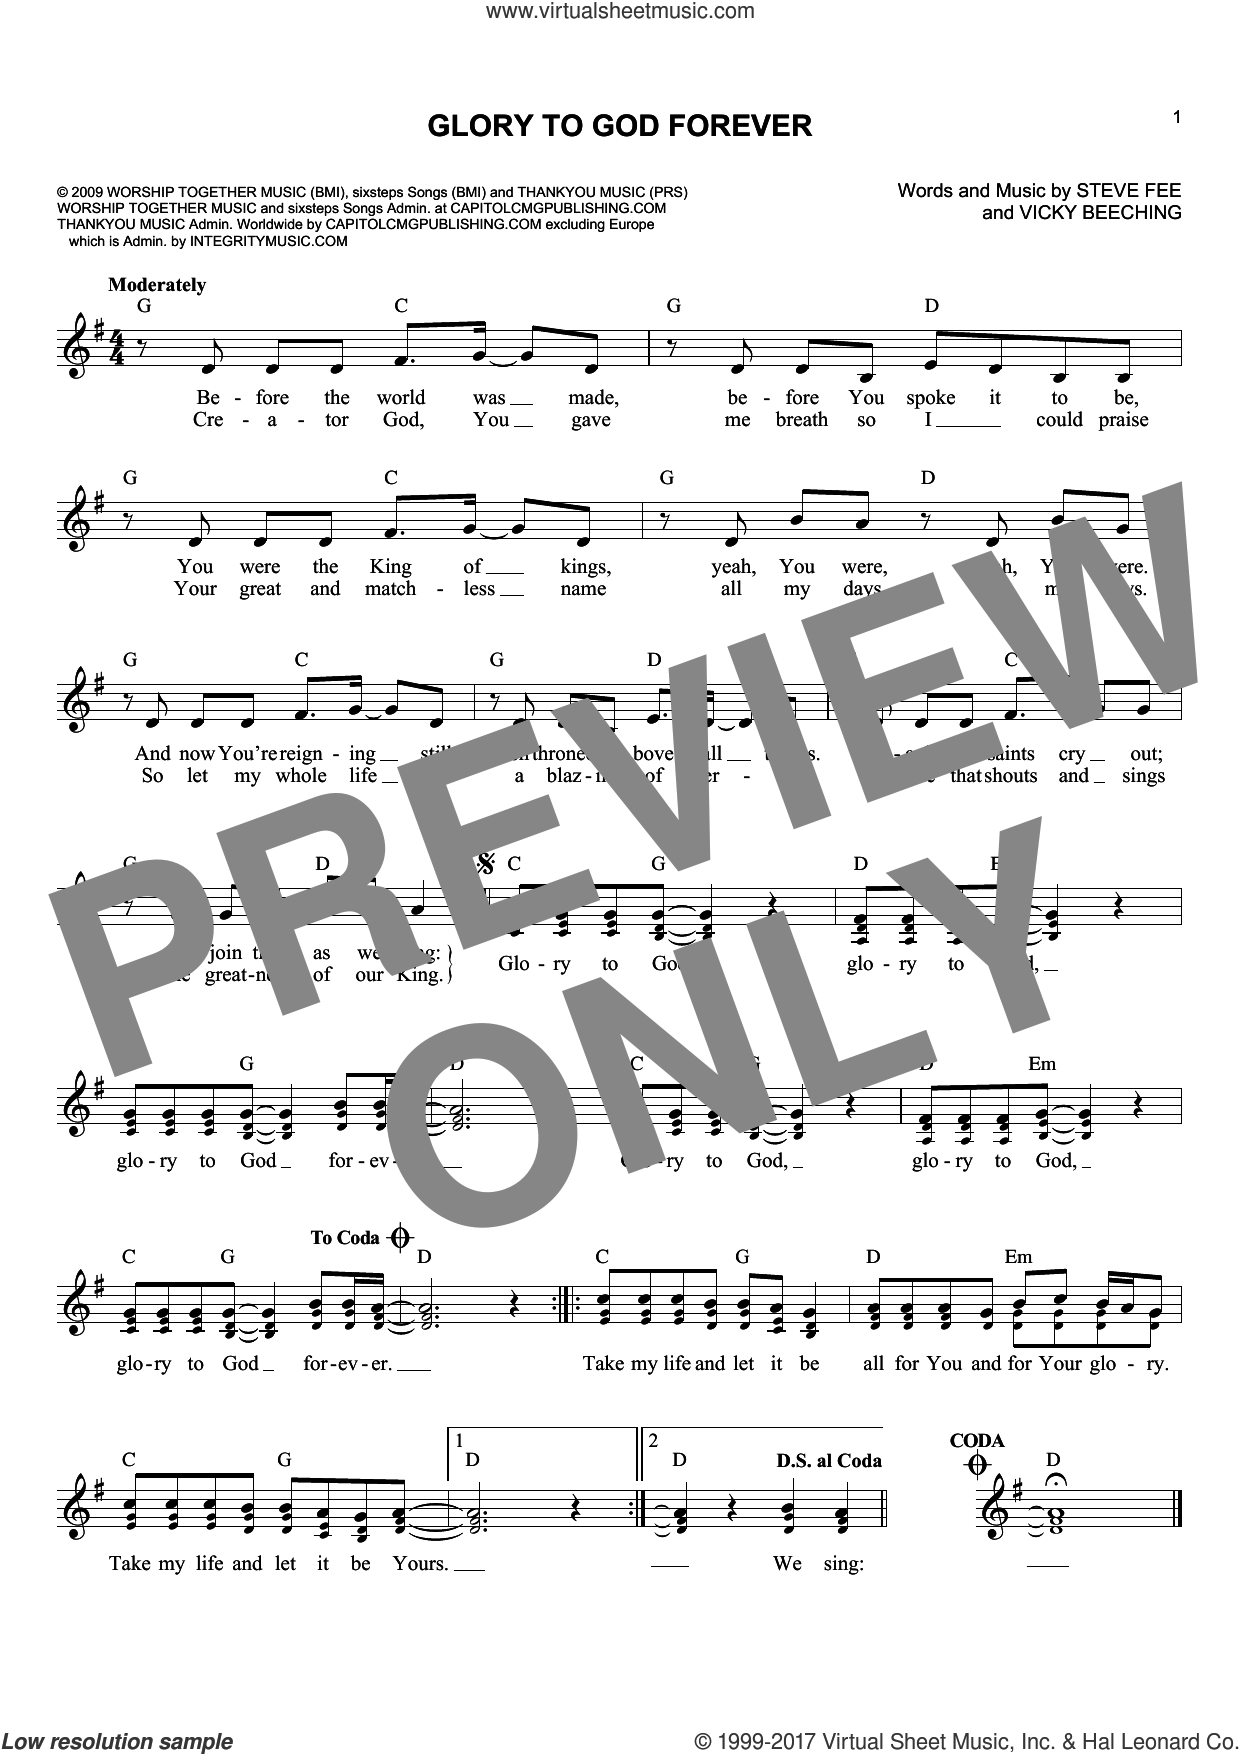 Glory To God Forever sheet music for voice and other instruments (fake book) by Vicky Beeching and Steve Fee, intermediate skill level